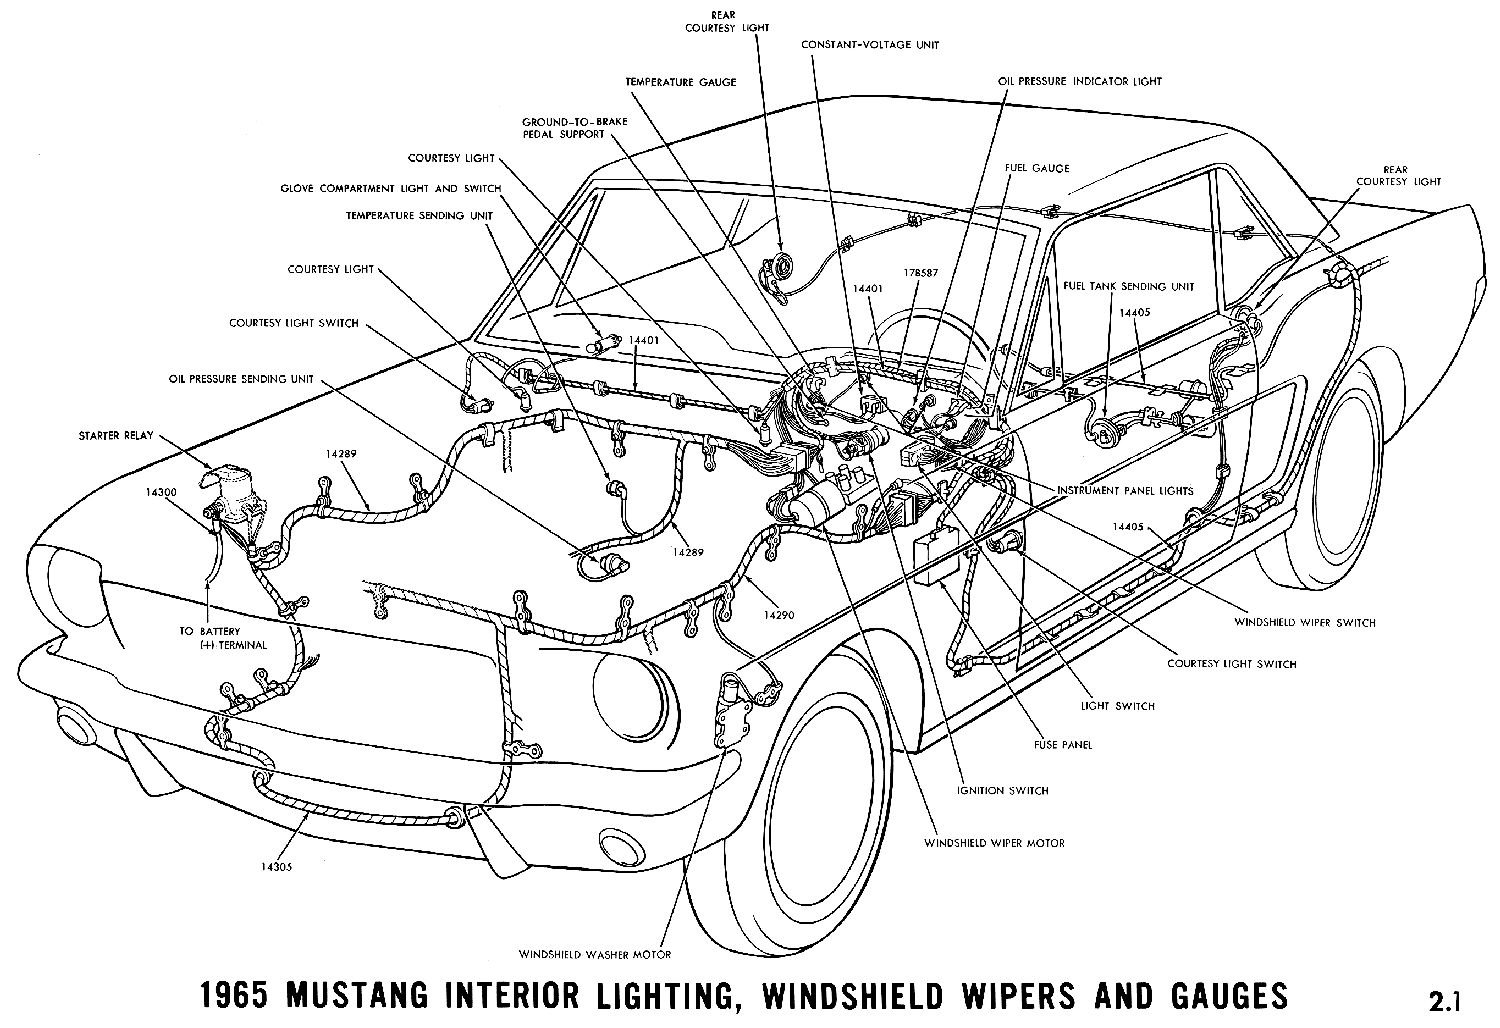 1967 mustang wiring diagram 1967 image wiring diagram for 1971 mustang the wiring diagram on 1967 mustang wiring diagram